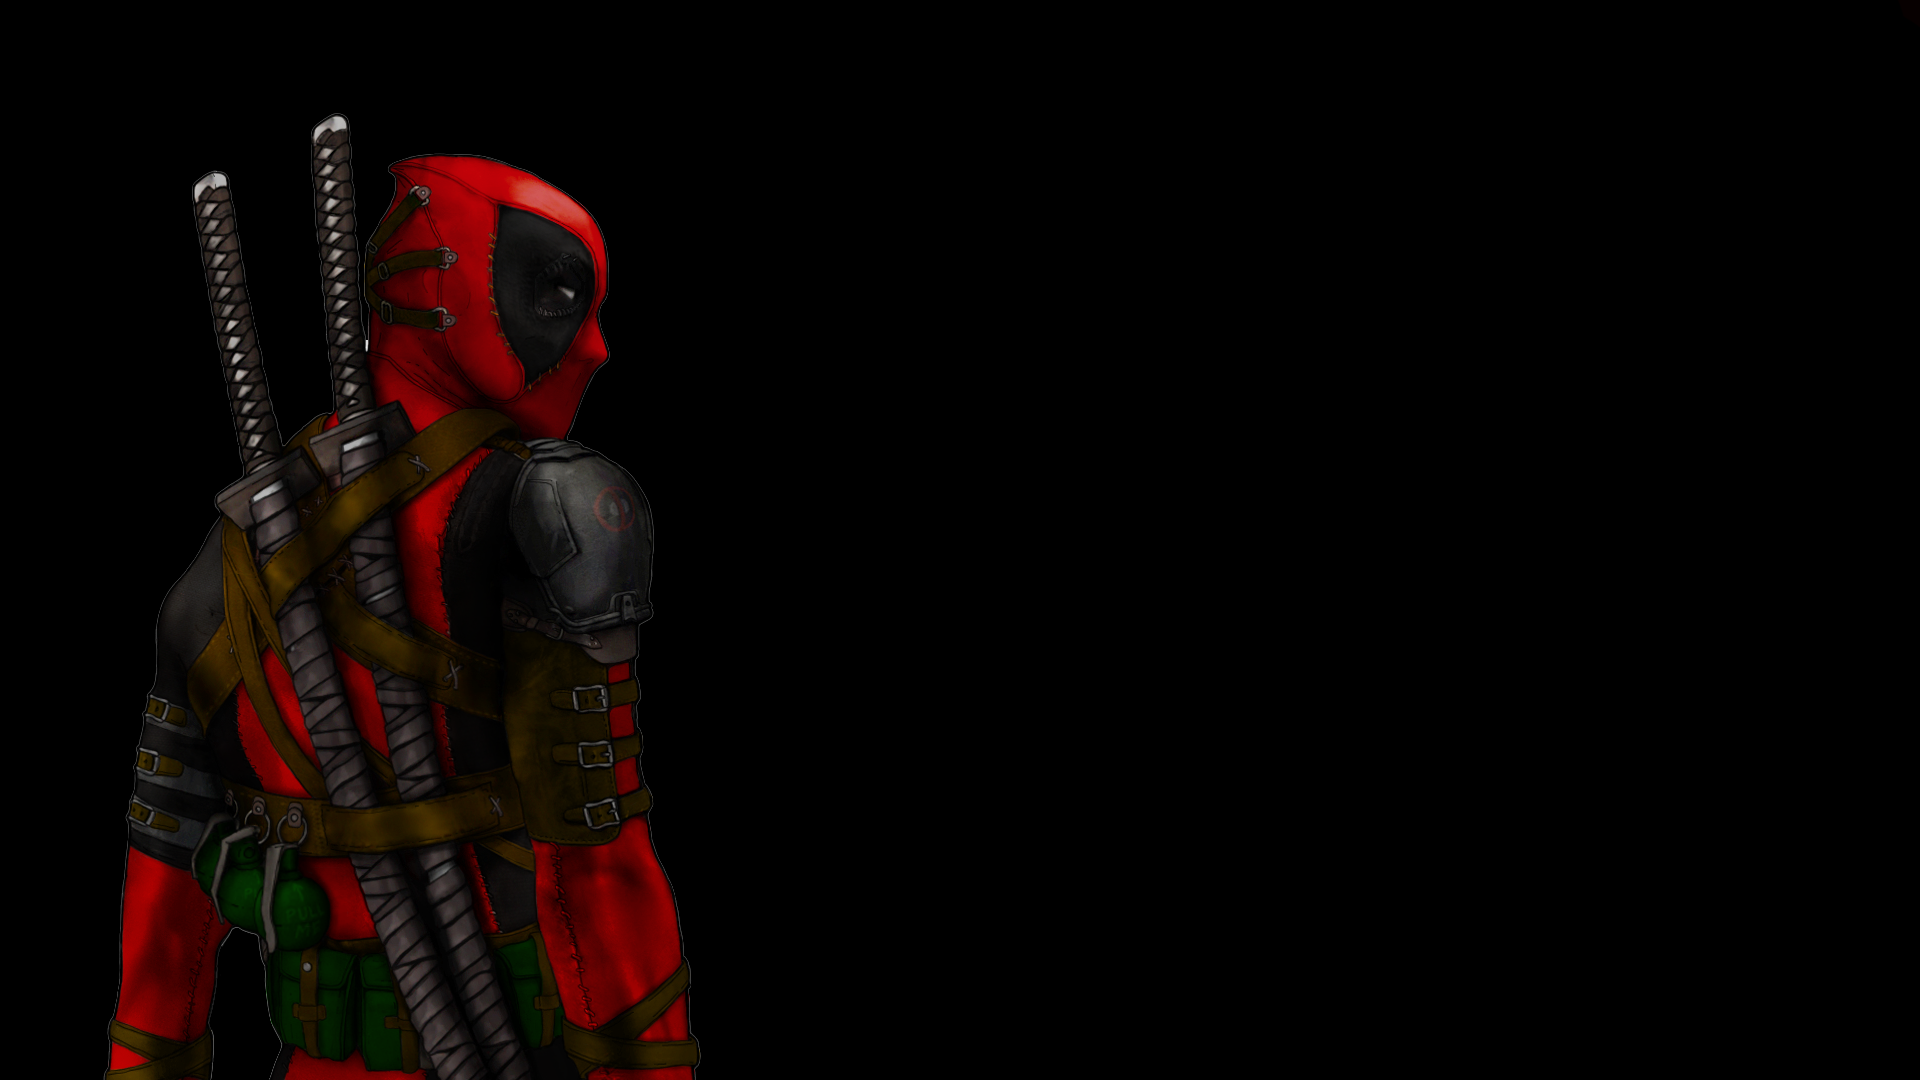 Wallpapers For Deadpool Movie Wallpaper Hd 1920x1080